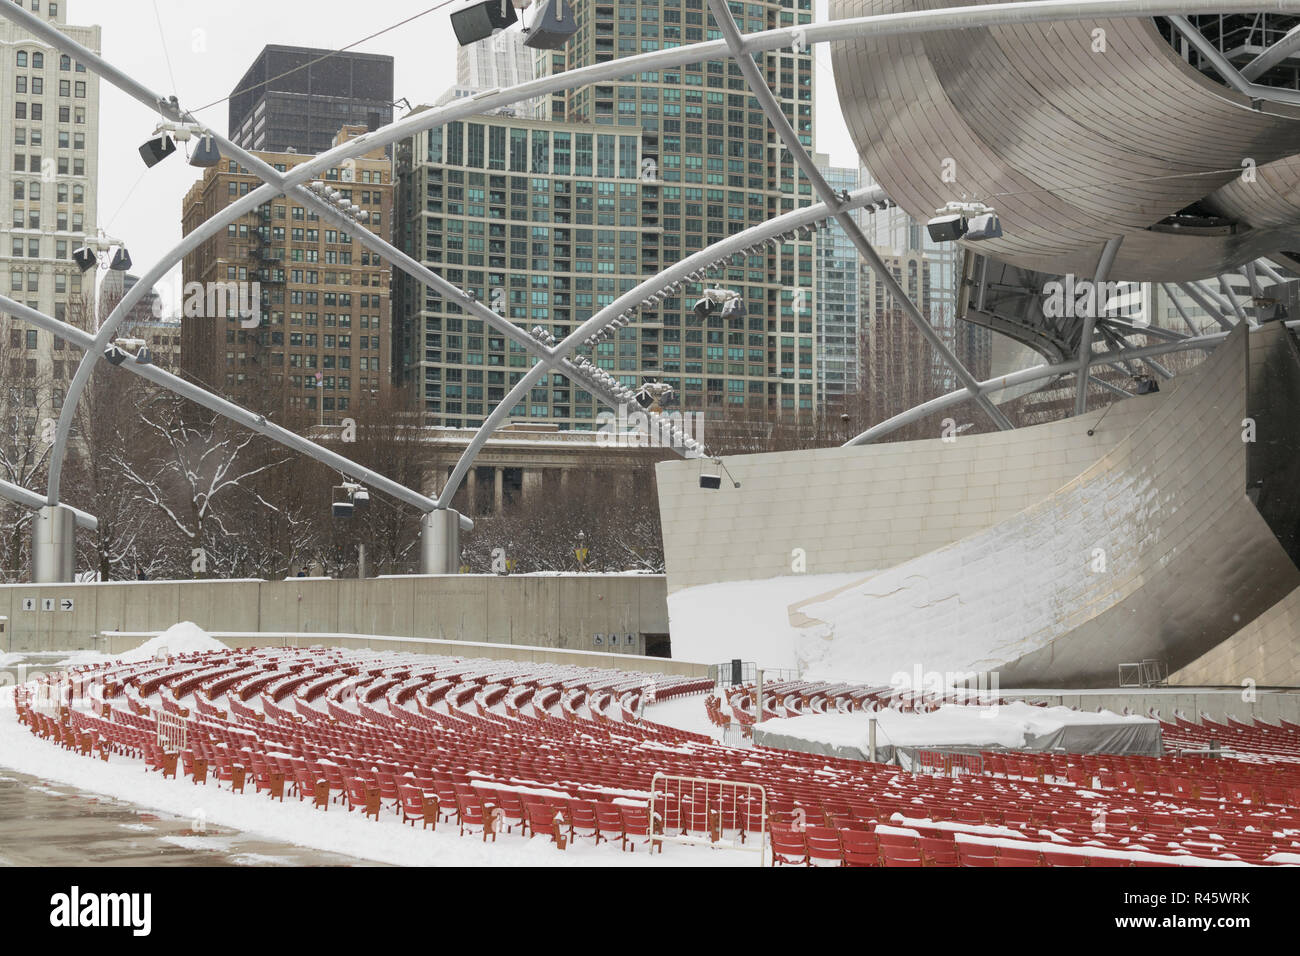 Jay Pritzker Pavilion in the snow, Chicago - Stock Image